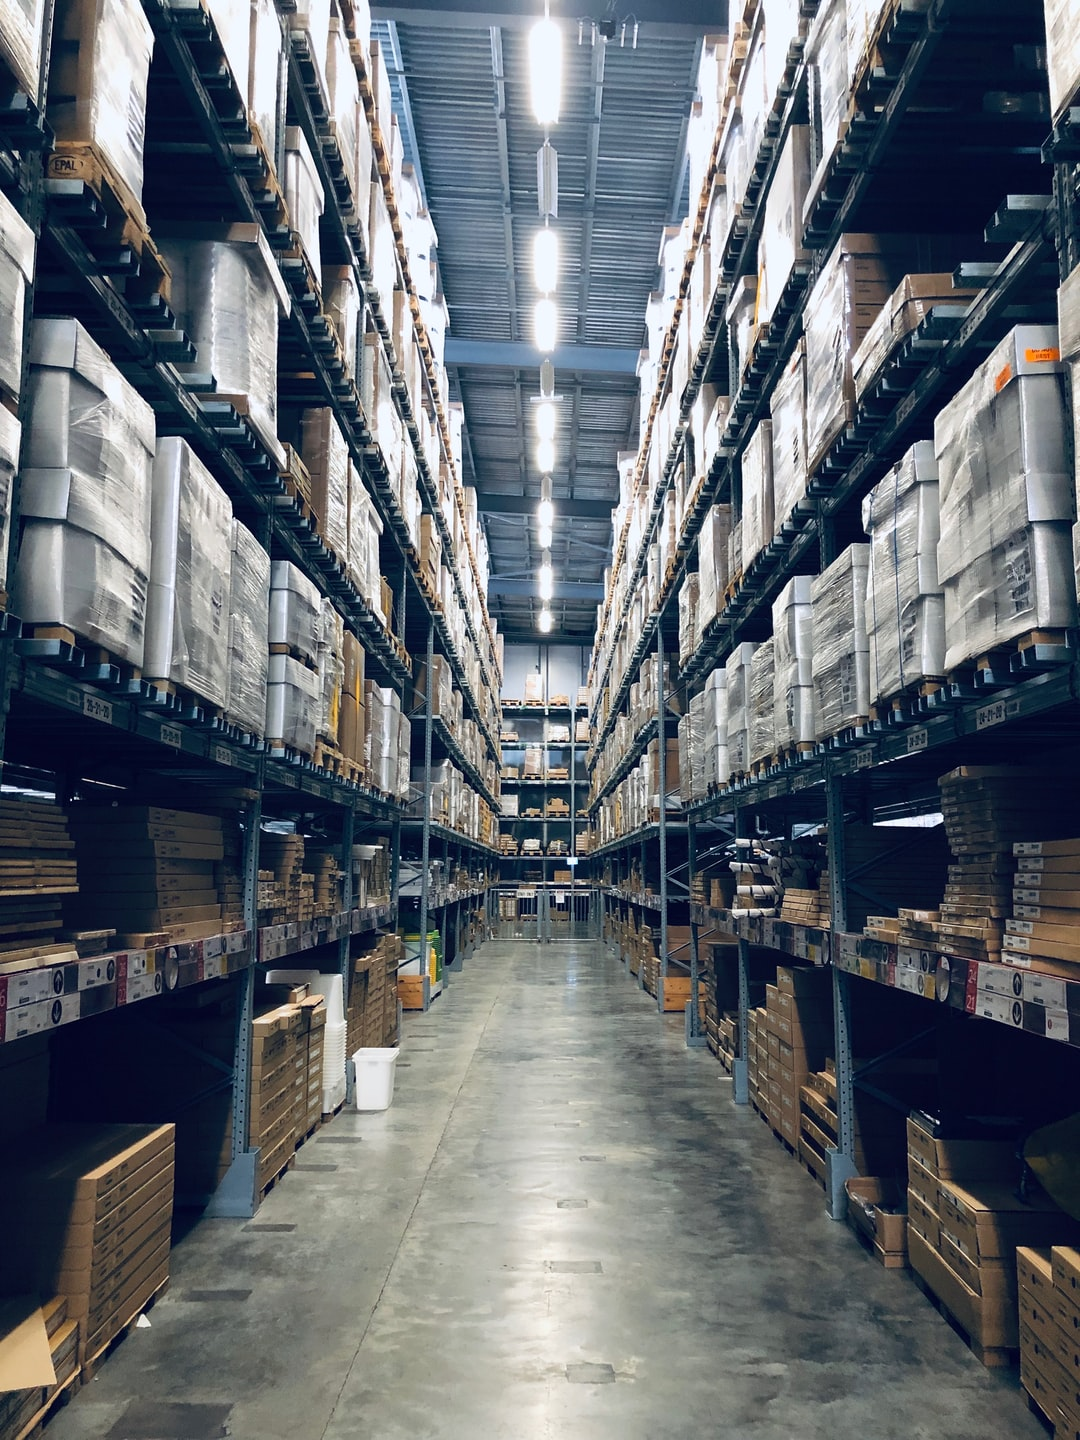 6 Things to Look For When Choosing Warehouse Management Software